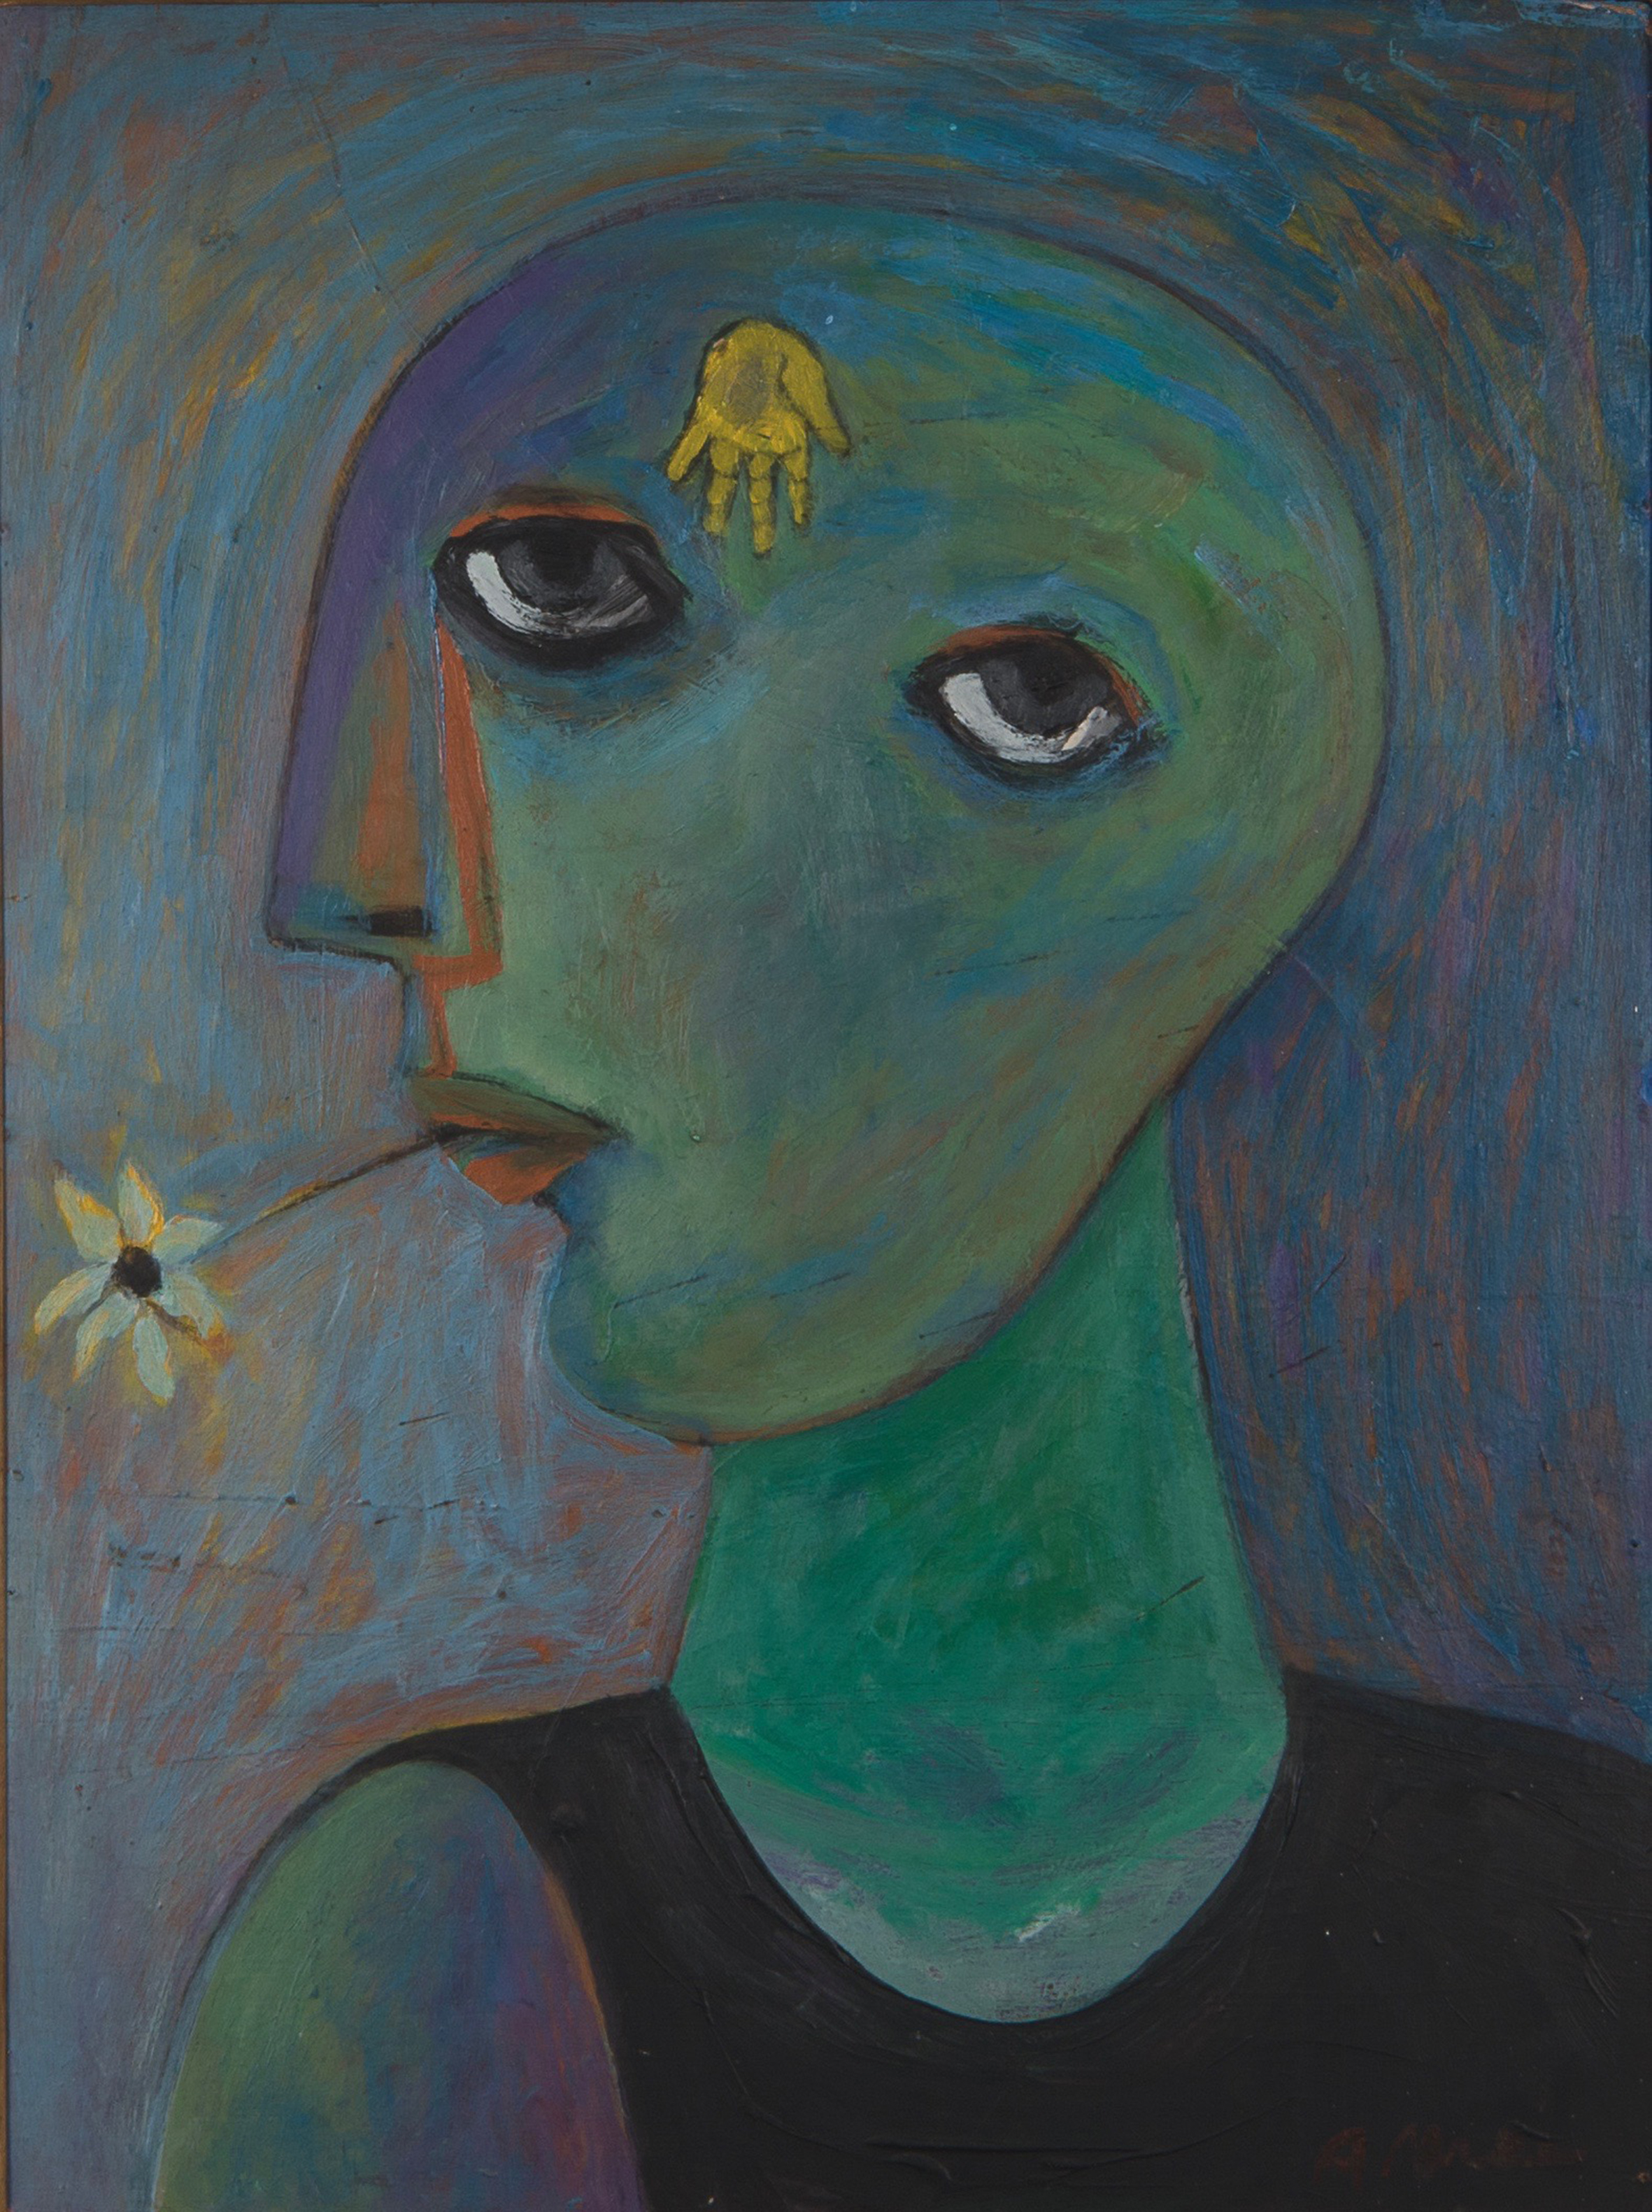 Ahmed-Morsi-Untitled-(Woman's-Head-with-Flower-and-Fatima's-Hand)-1972.jpg